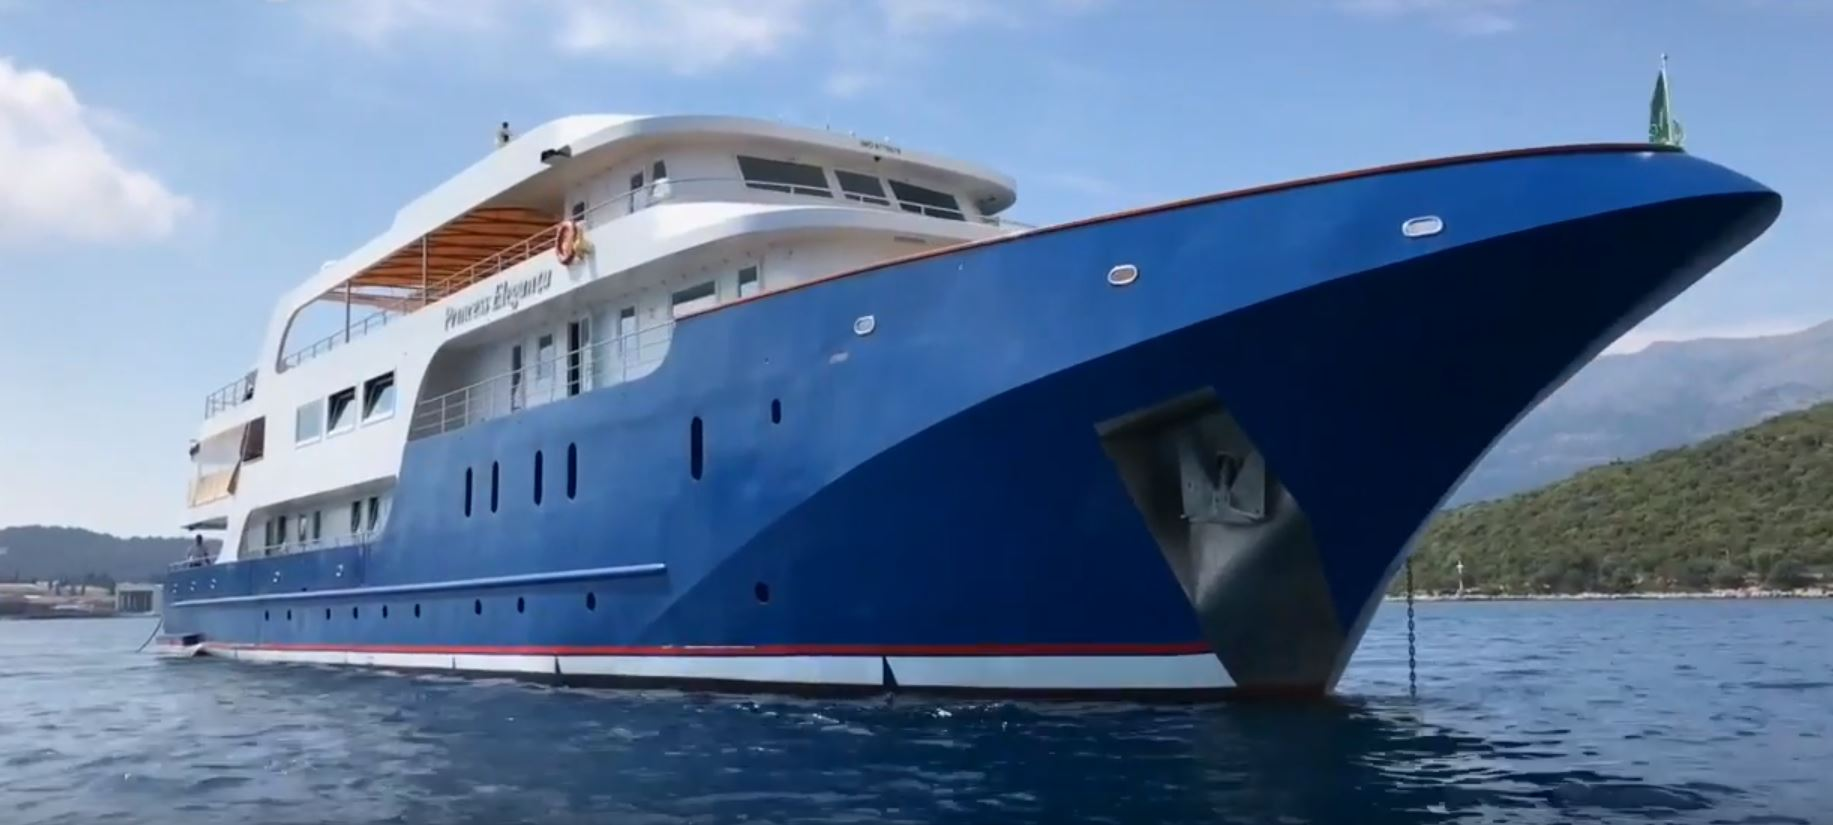 Princess Eleganza, the ship servicing Along the Adriatic Coast